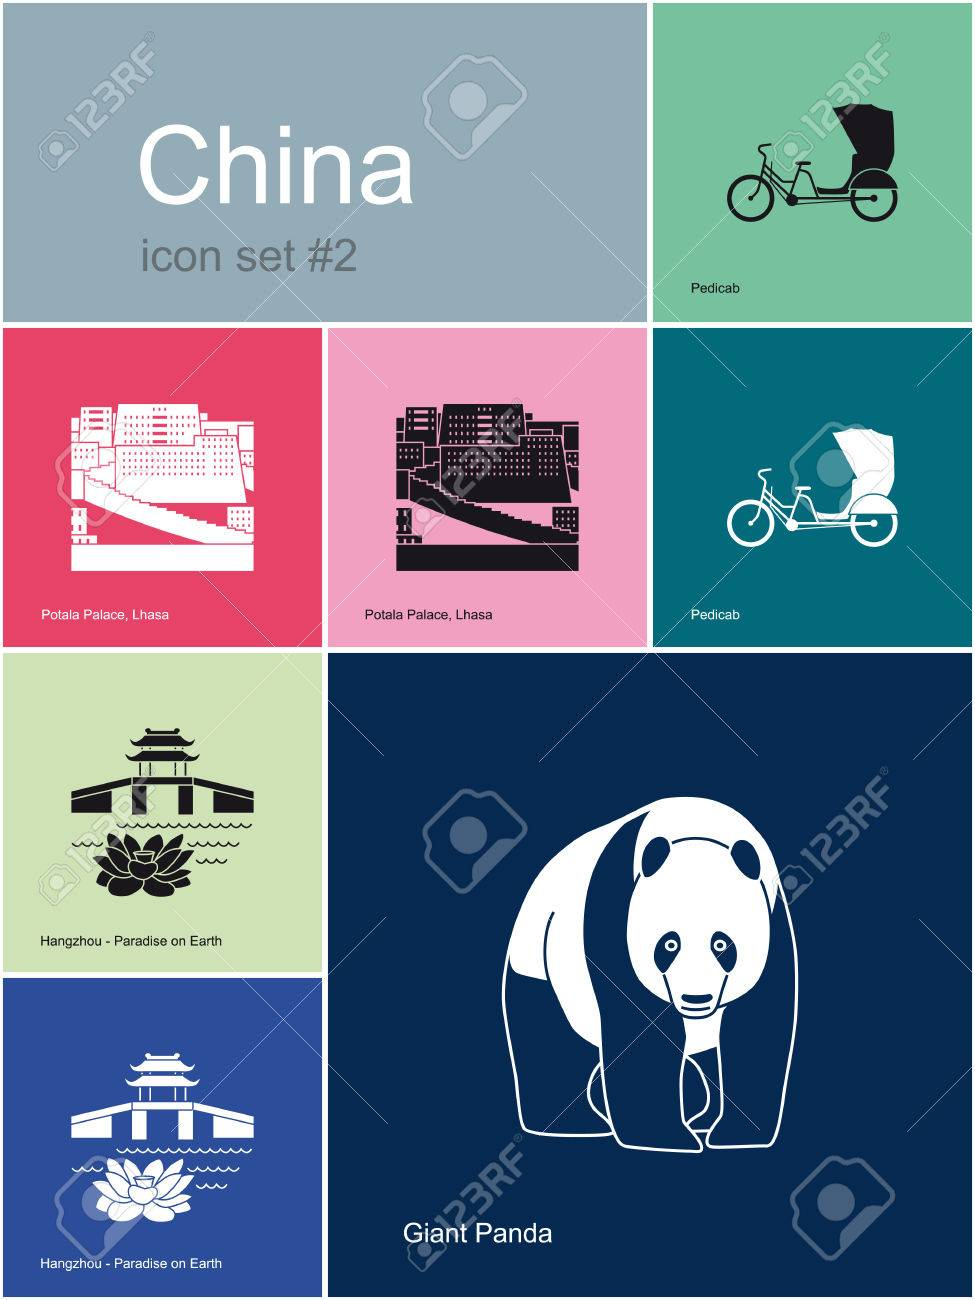 Landmarks of China  Set of flat color icons in Metro style  Editable vector illustration Stock Vector - 27537887